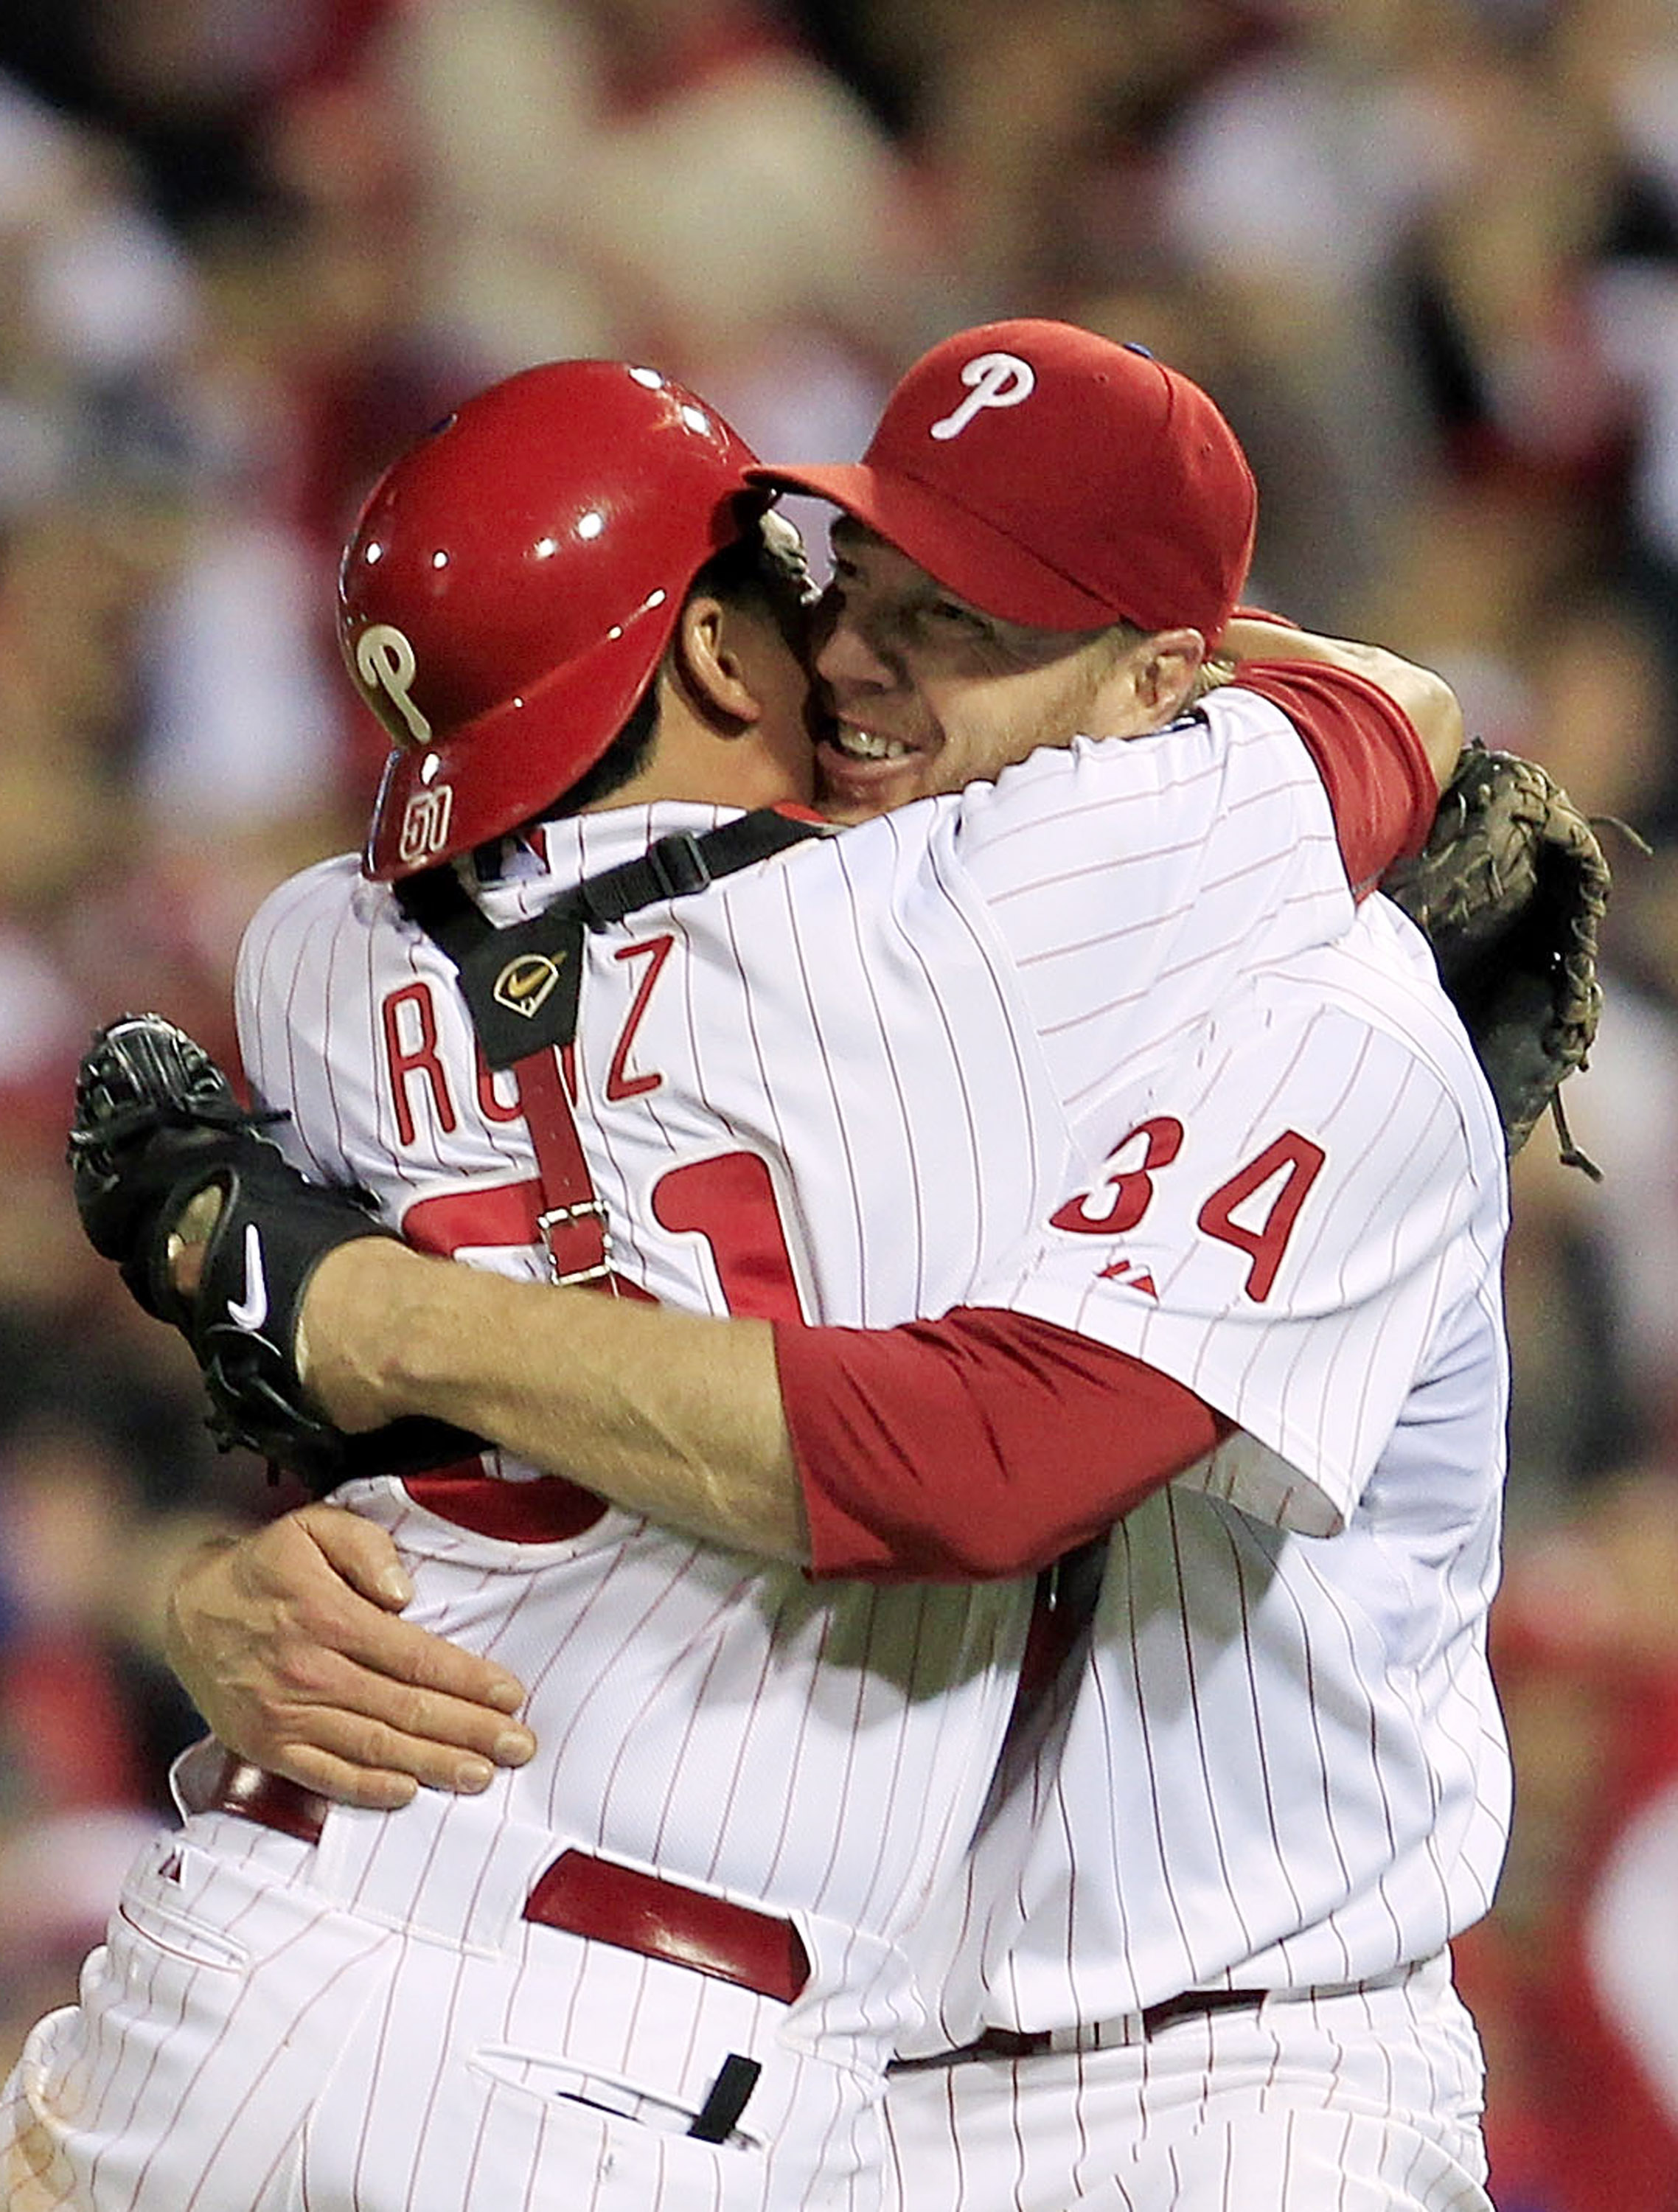 PHILADELPHIA - OCTOBER 06: (EDITORS NOTE: Alternate Crop) Roy Halladay #34 and Carlos Ruiz #51 of the Philadelphia Phillies celebrate Halladay's no-hitter and the win in Game 1 of the NLDS against the Cincinnati Reds at Citizens Bank Park on October 6, 20